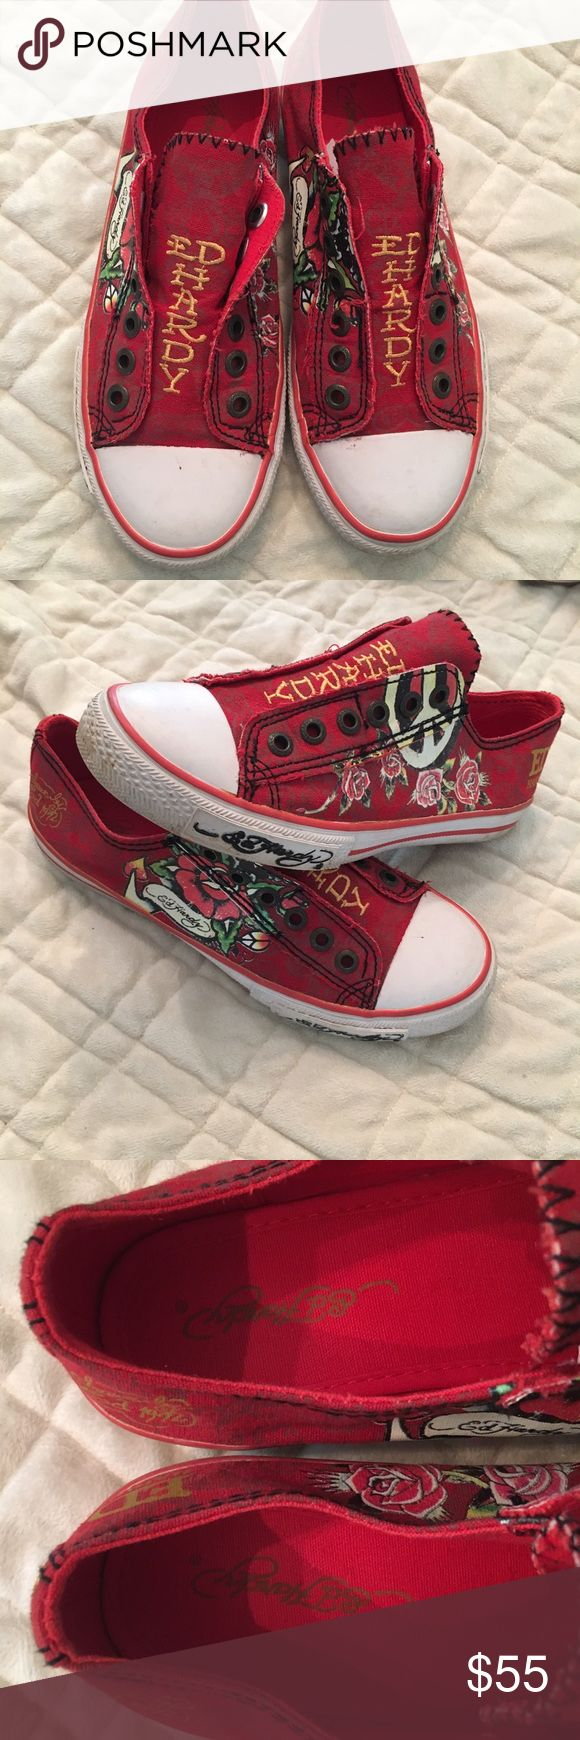 Ed Hardy 🌹 slide on sneakers sz 8 GUC Women's Ed Hardy red slide on sneakers size 8. Very cool designs of peace sign and roses 🌹some signs of wear shown in pics Ed Hardy Shoes Sneakers